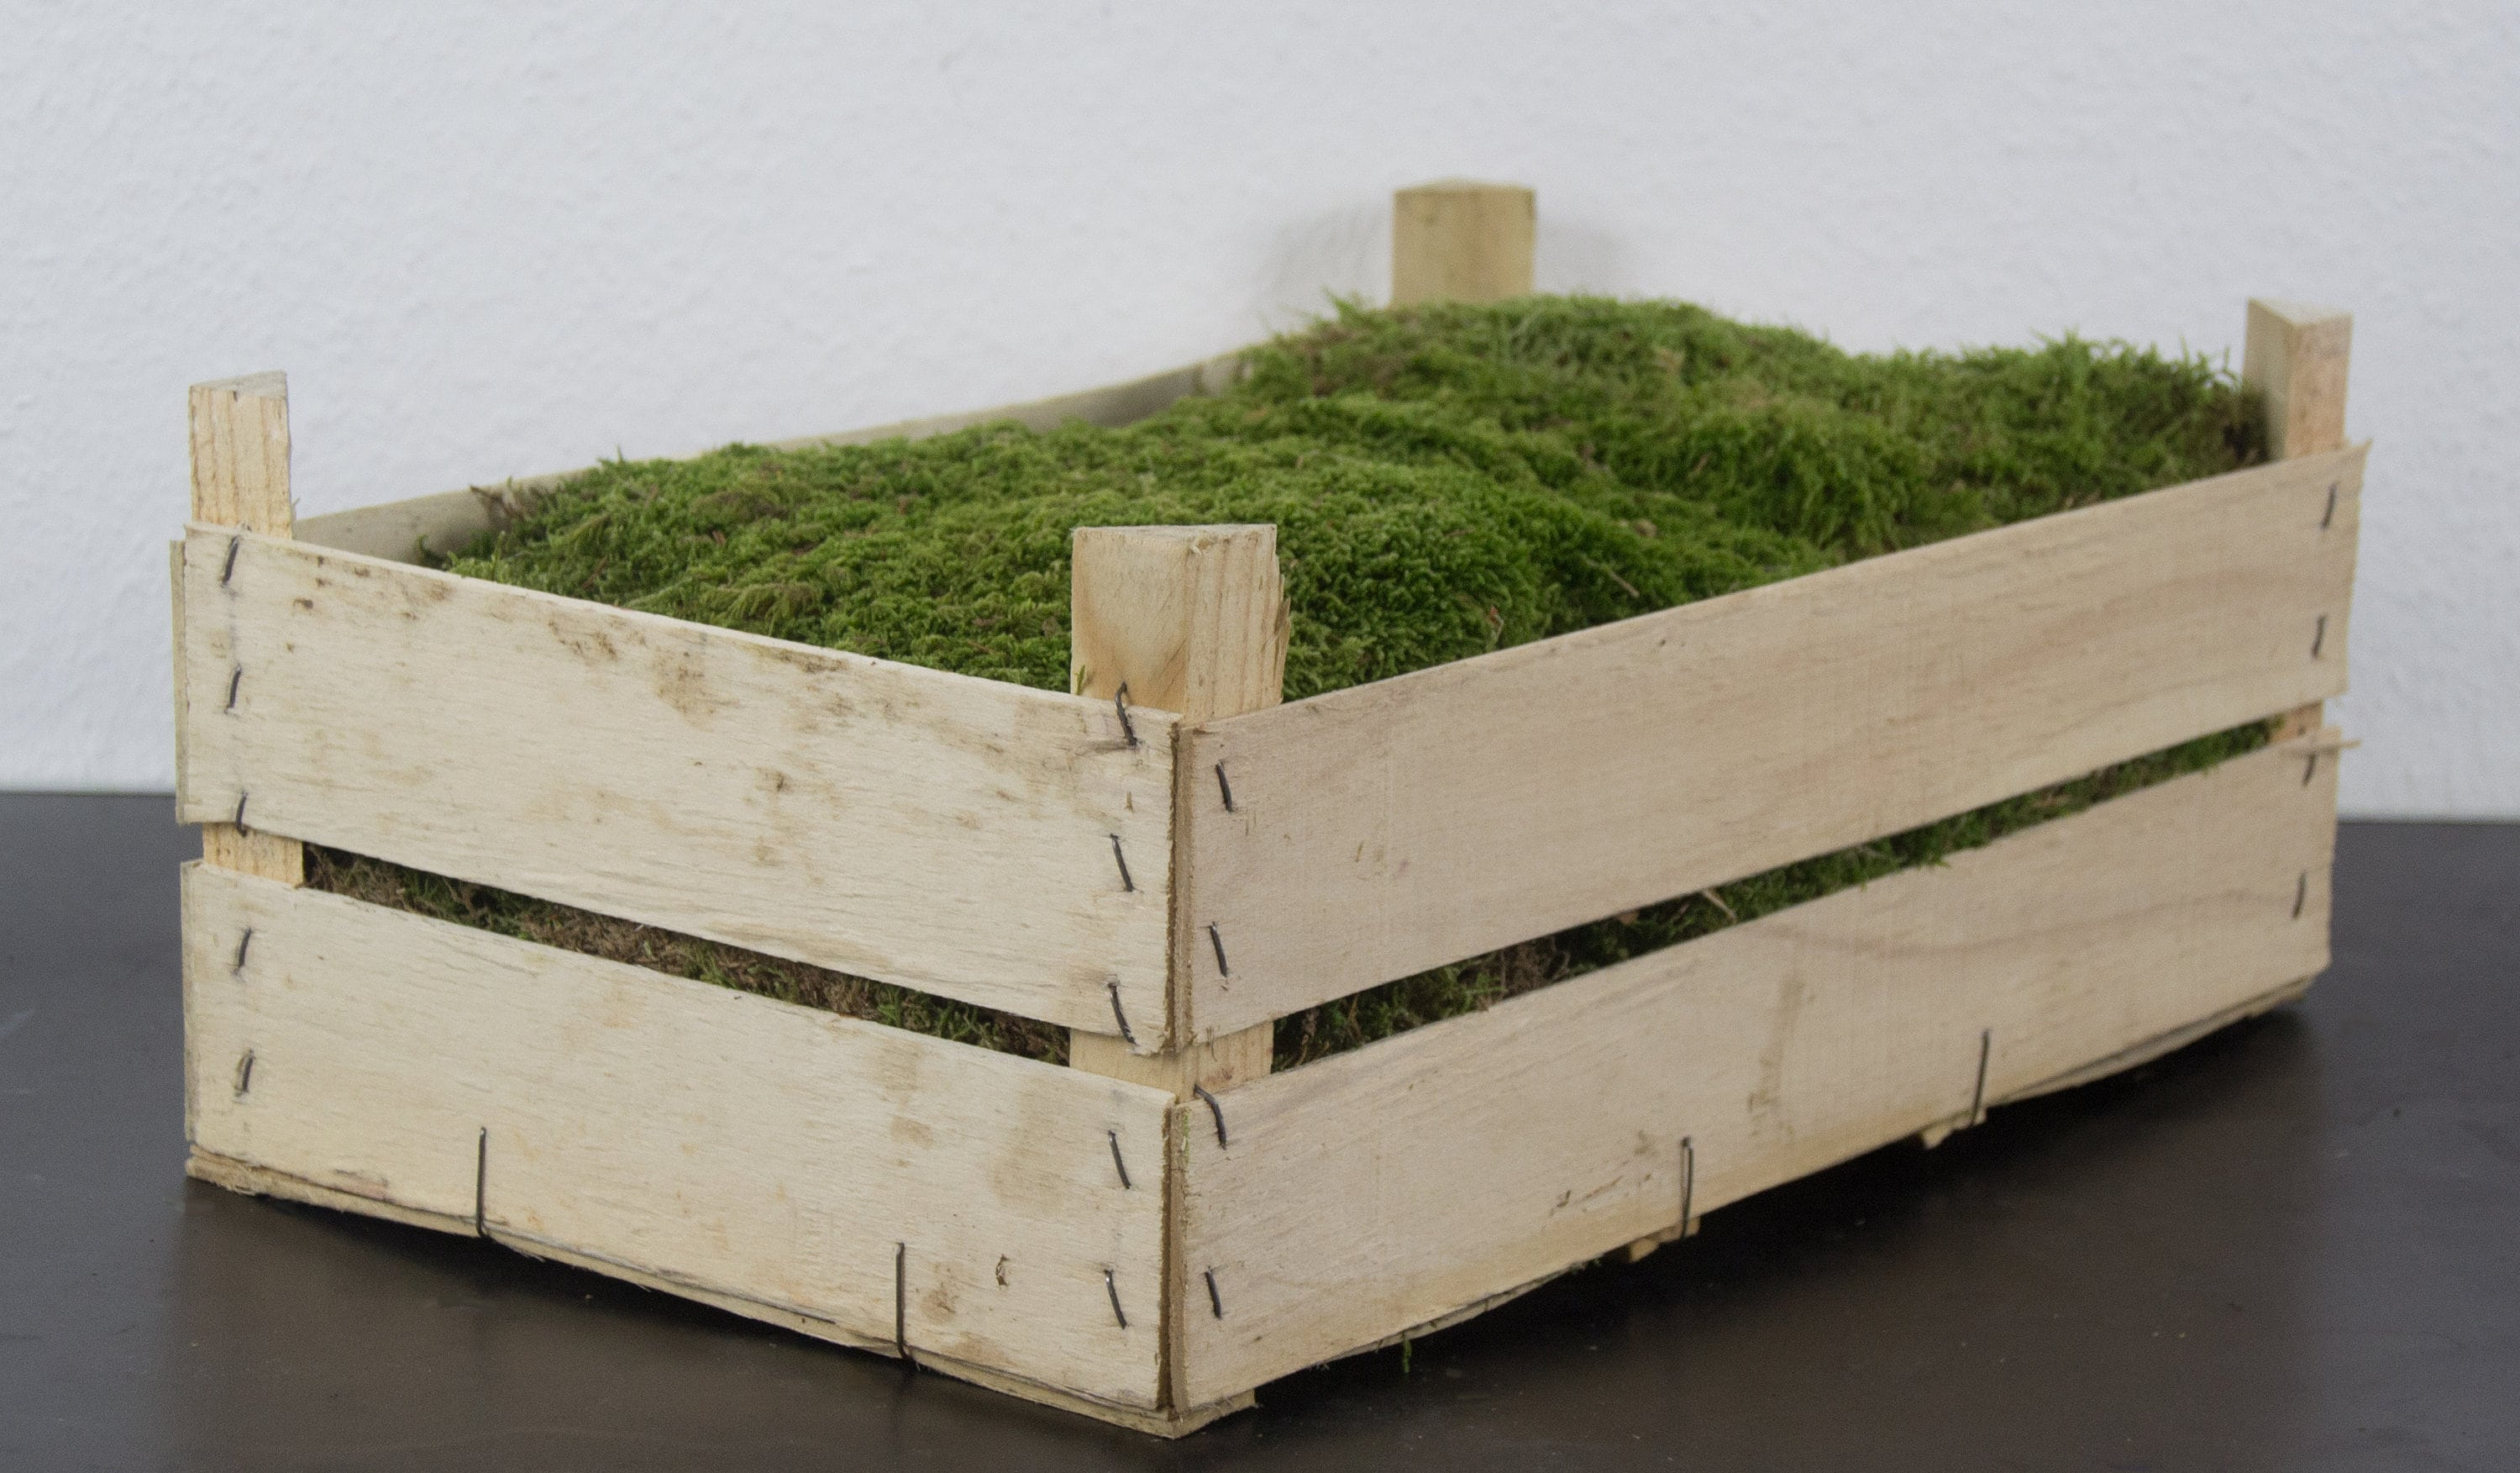 Ebay Wanddeko Buy Crate Deco Moss Natural Moss Plates For Florists Real Forest Moss In The Package Lots Of Moss Plates For Decorating For Tinkering